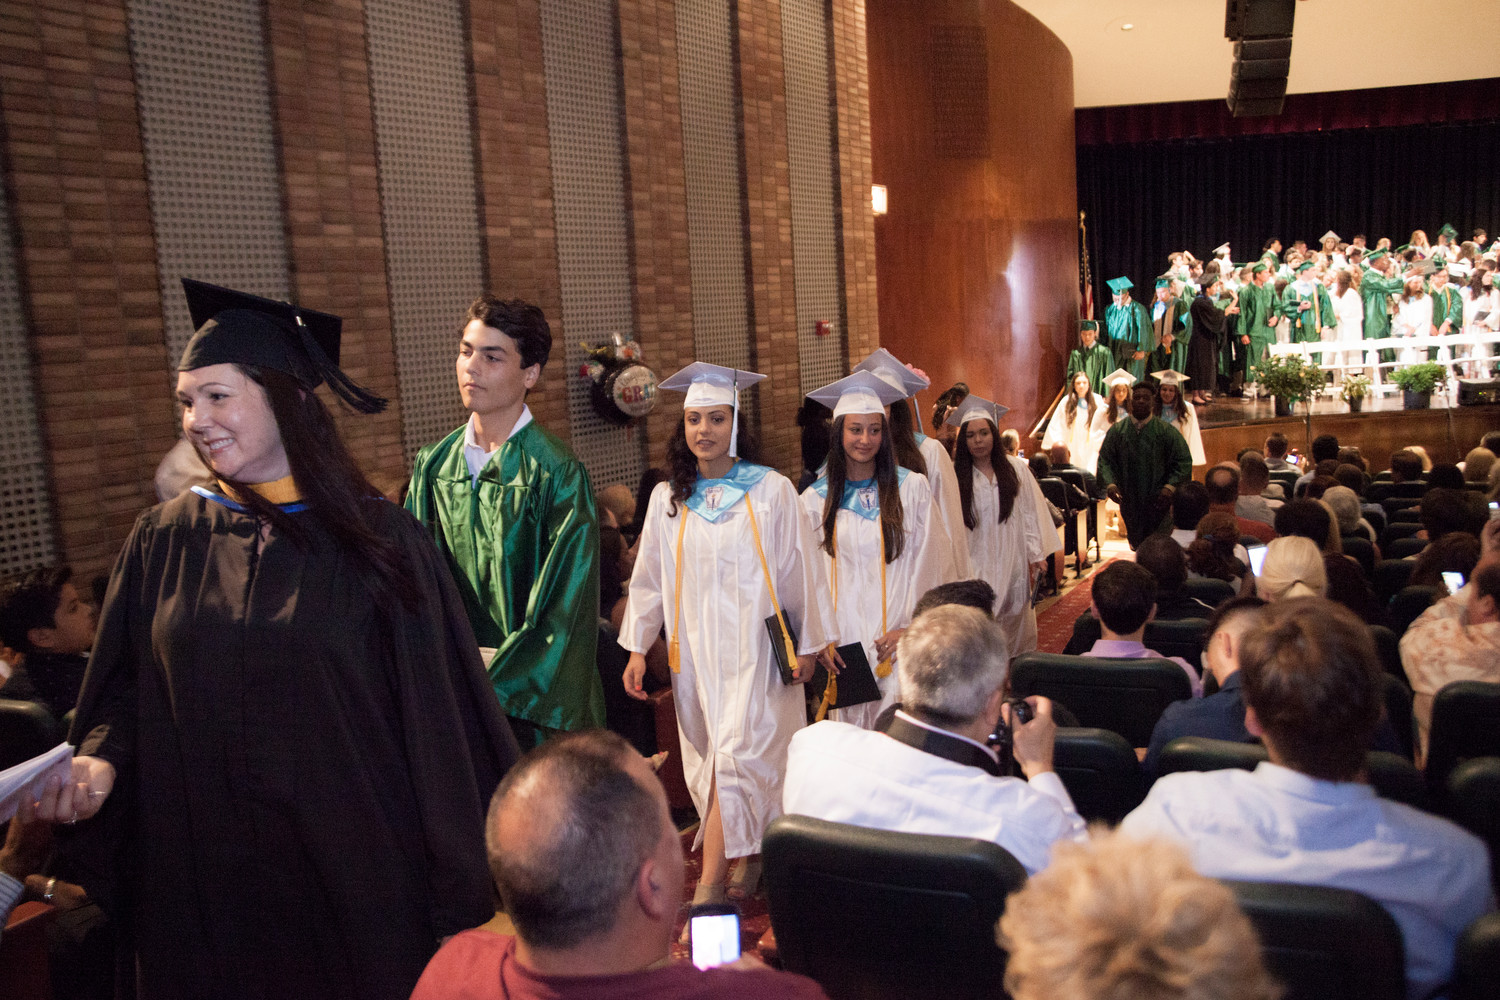 As the graduates exited the stage after the ceremony emotions ran high.